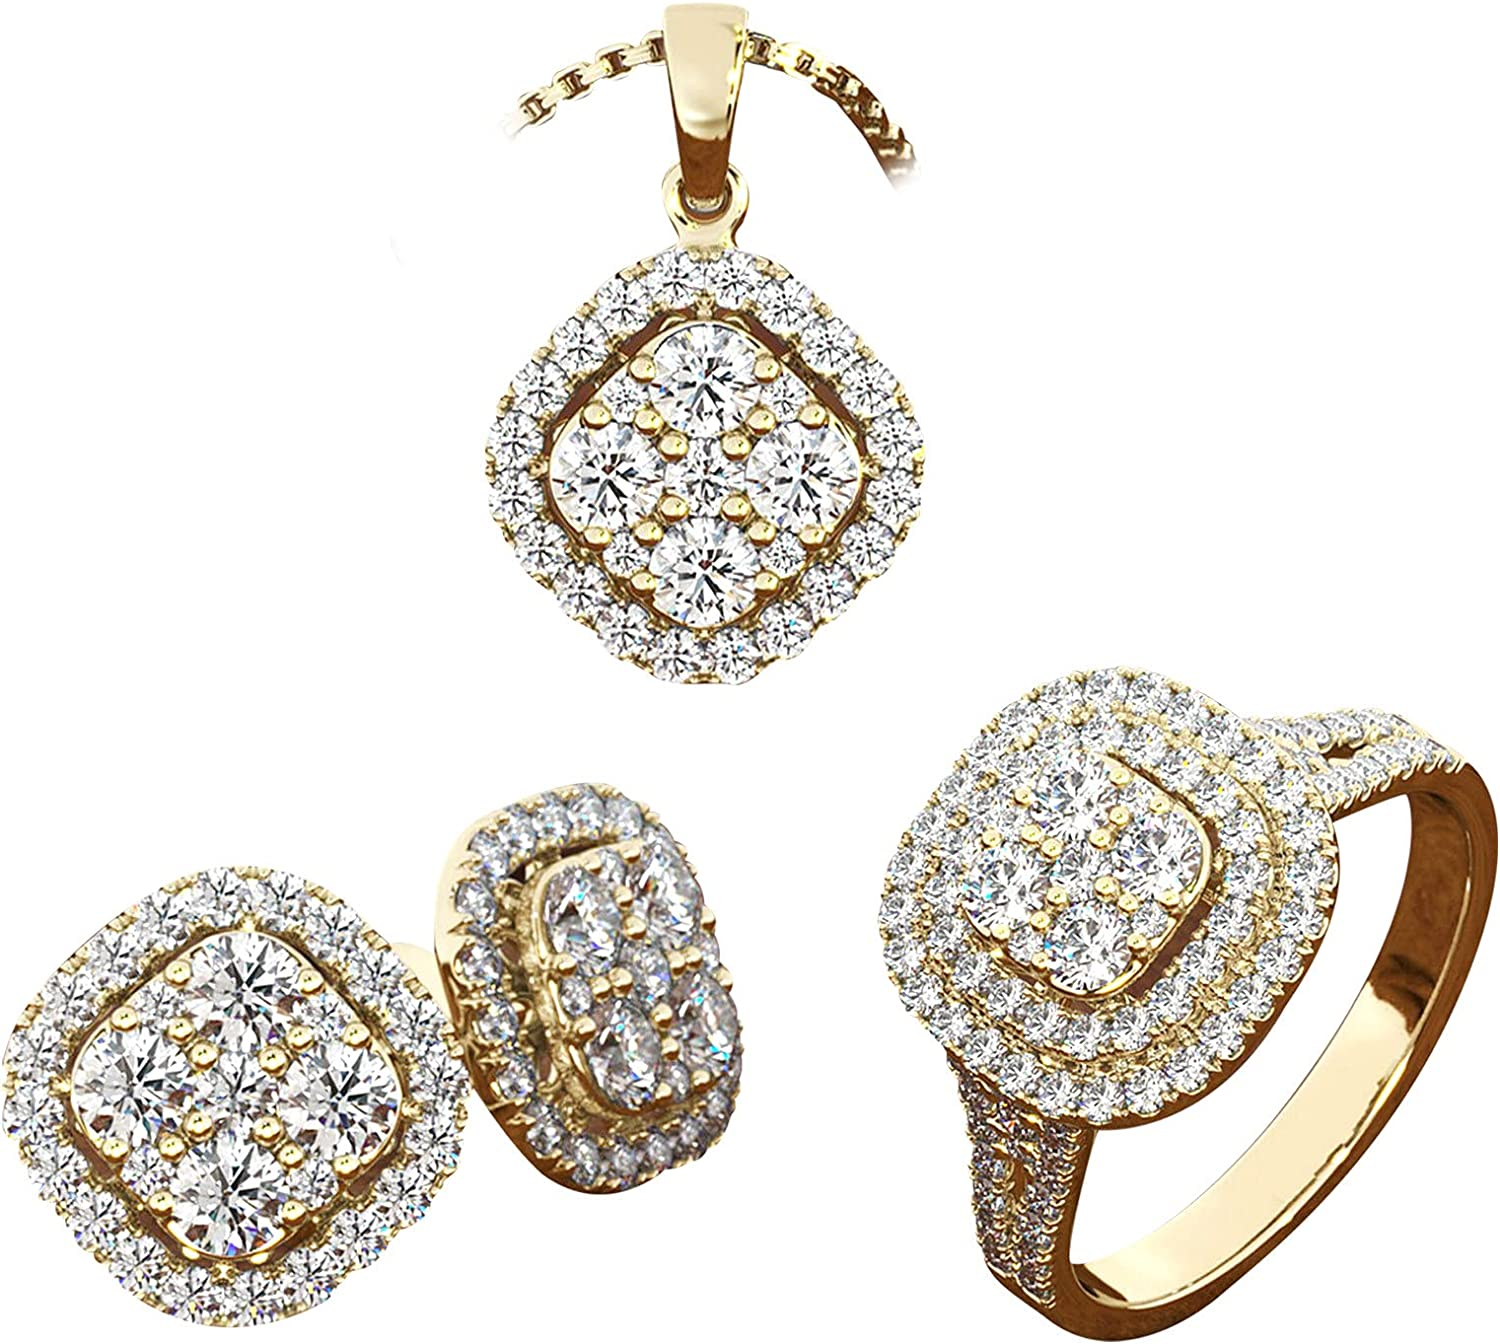 3 PCS Diamond Jewelry Set For Women Ring & Necklace & 1 Pair Earrings Engagement Rings Anniversary Day Gift For Girlfriend Mom Bridal Wife